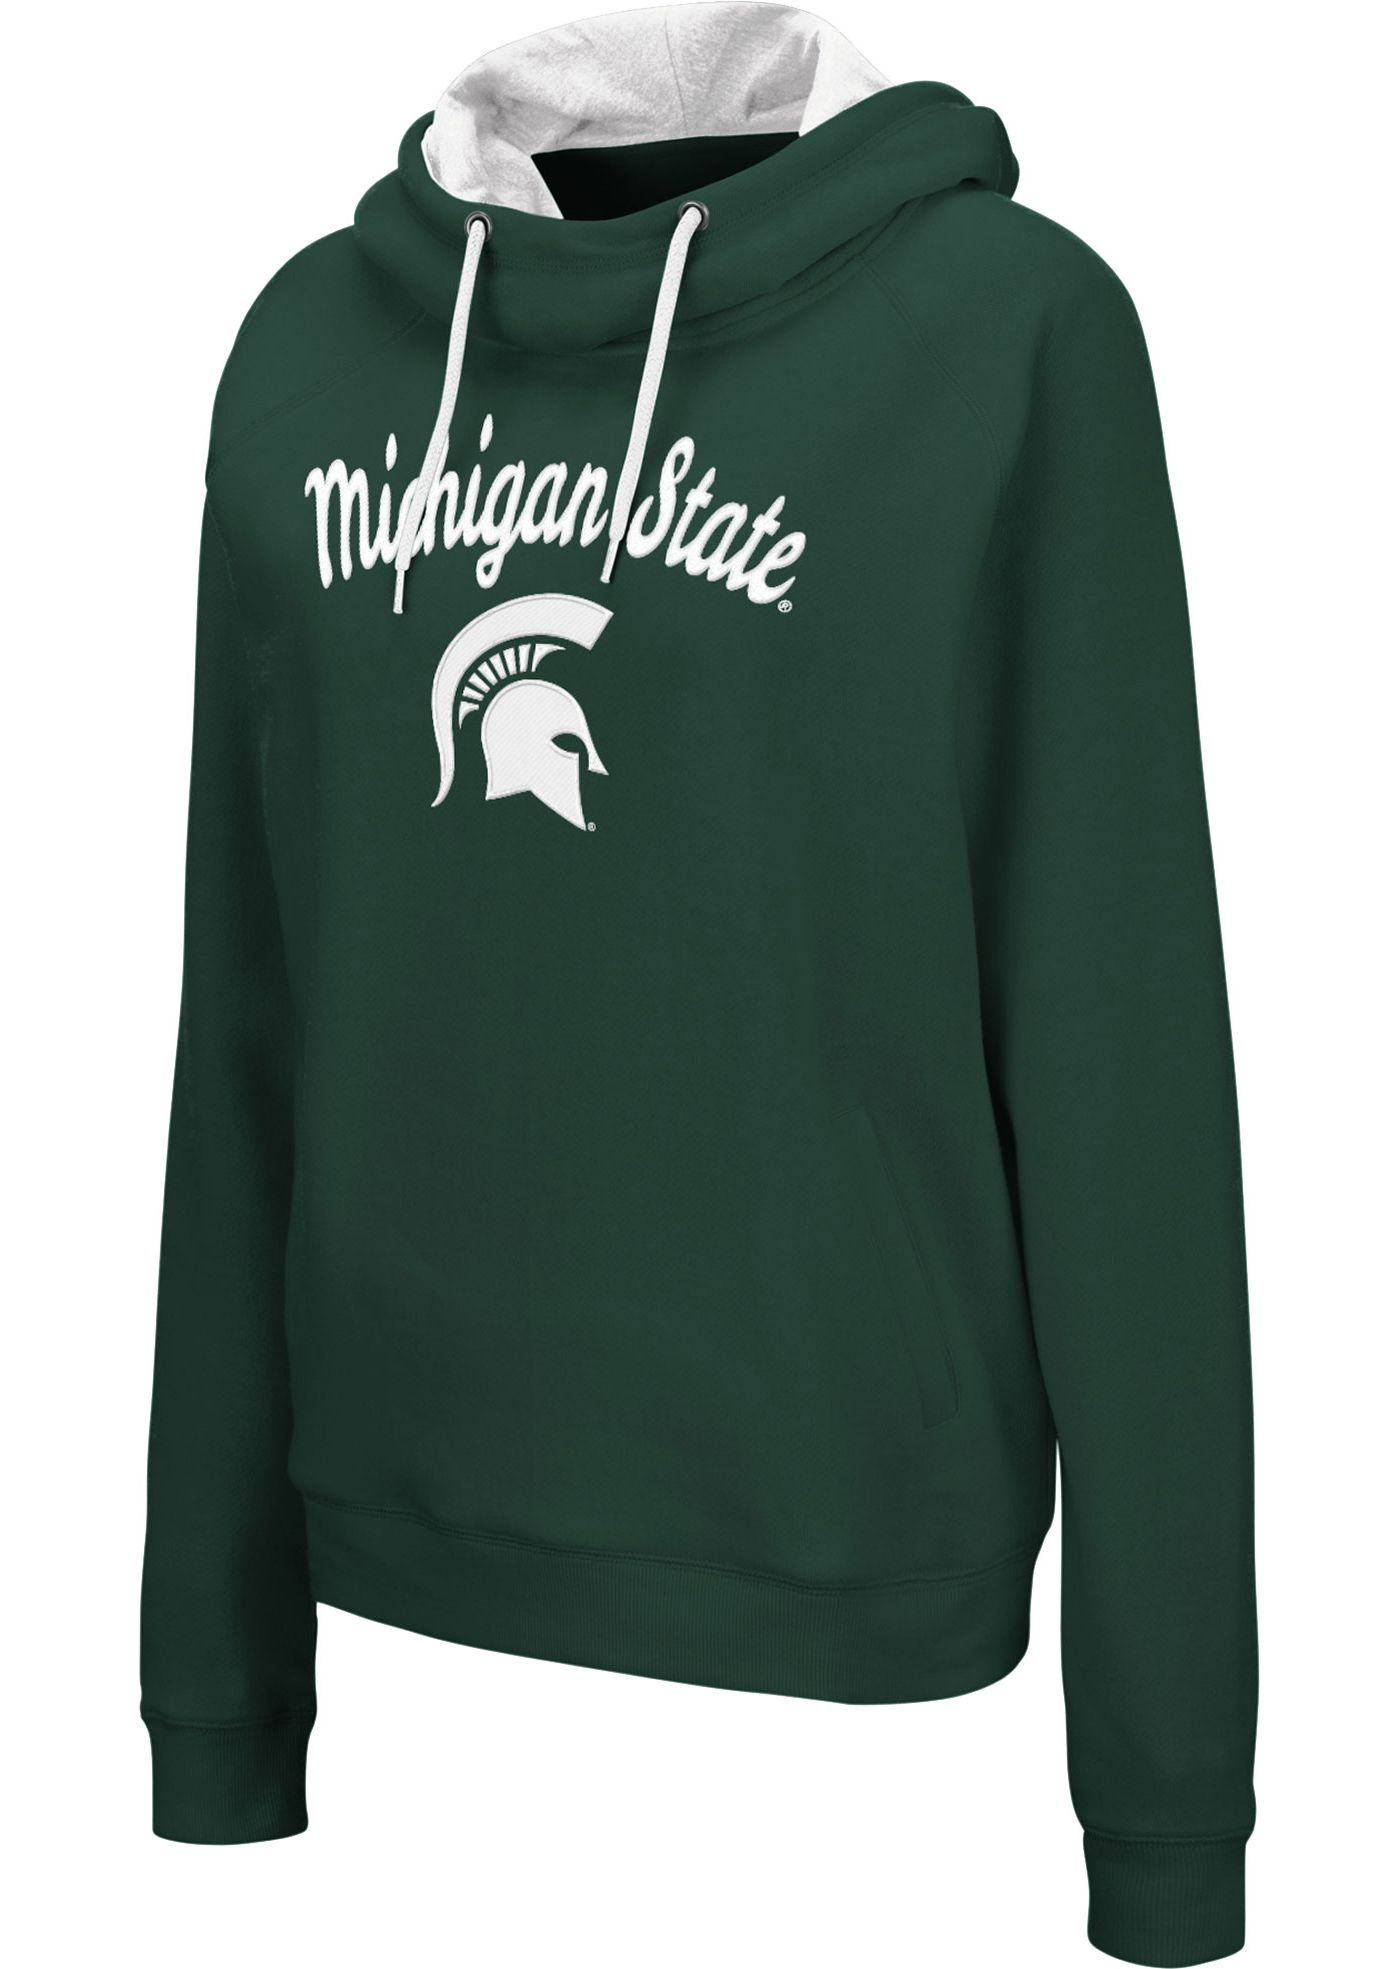 Colosseum Women's Michigan State Spartans Green Louise Pullover Sweatshirt